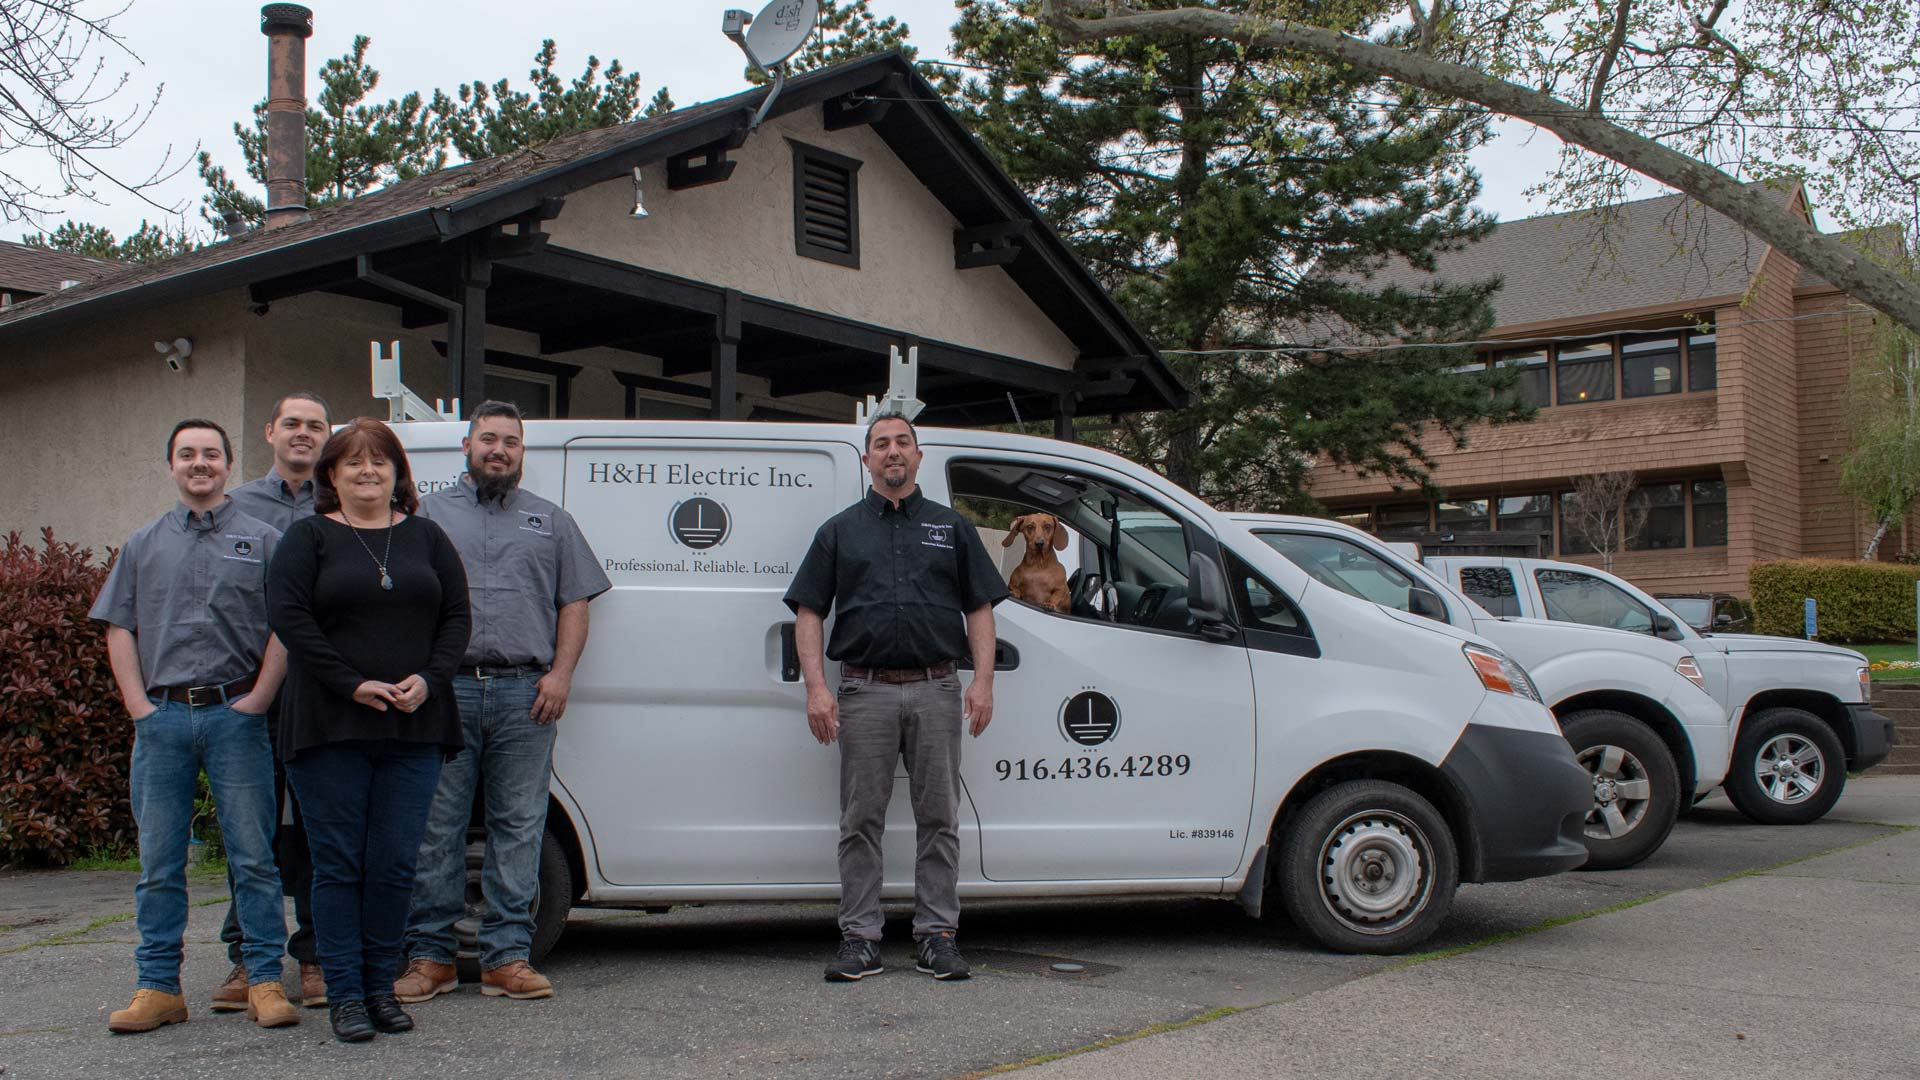 H&H Electric - Fair Oaks Electrical Contractor, Sacramento Electrical Contractor, Family Owned & Operated. Free Estimates. Residential / Commercial Service